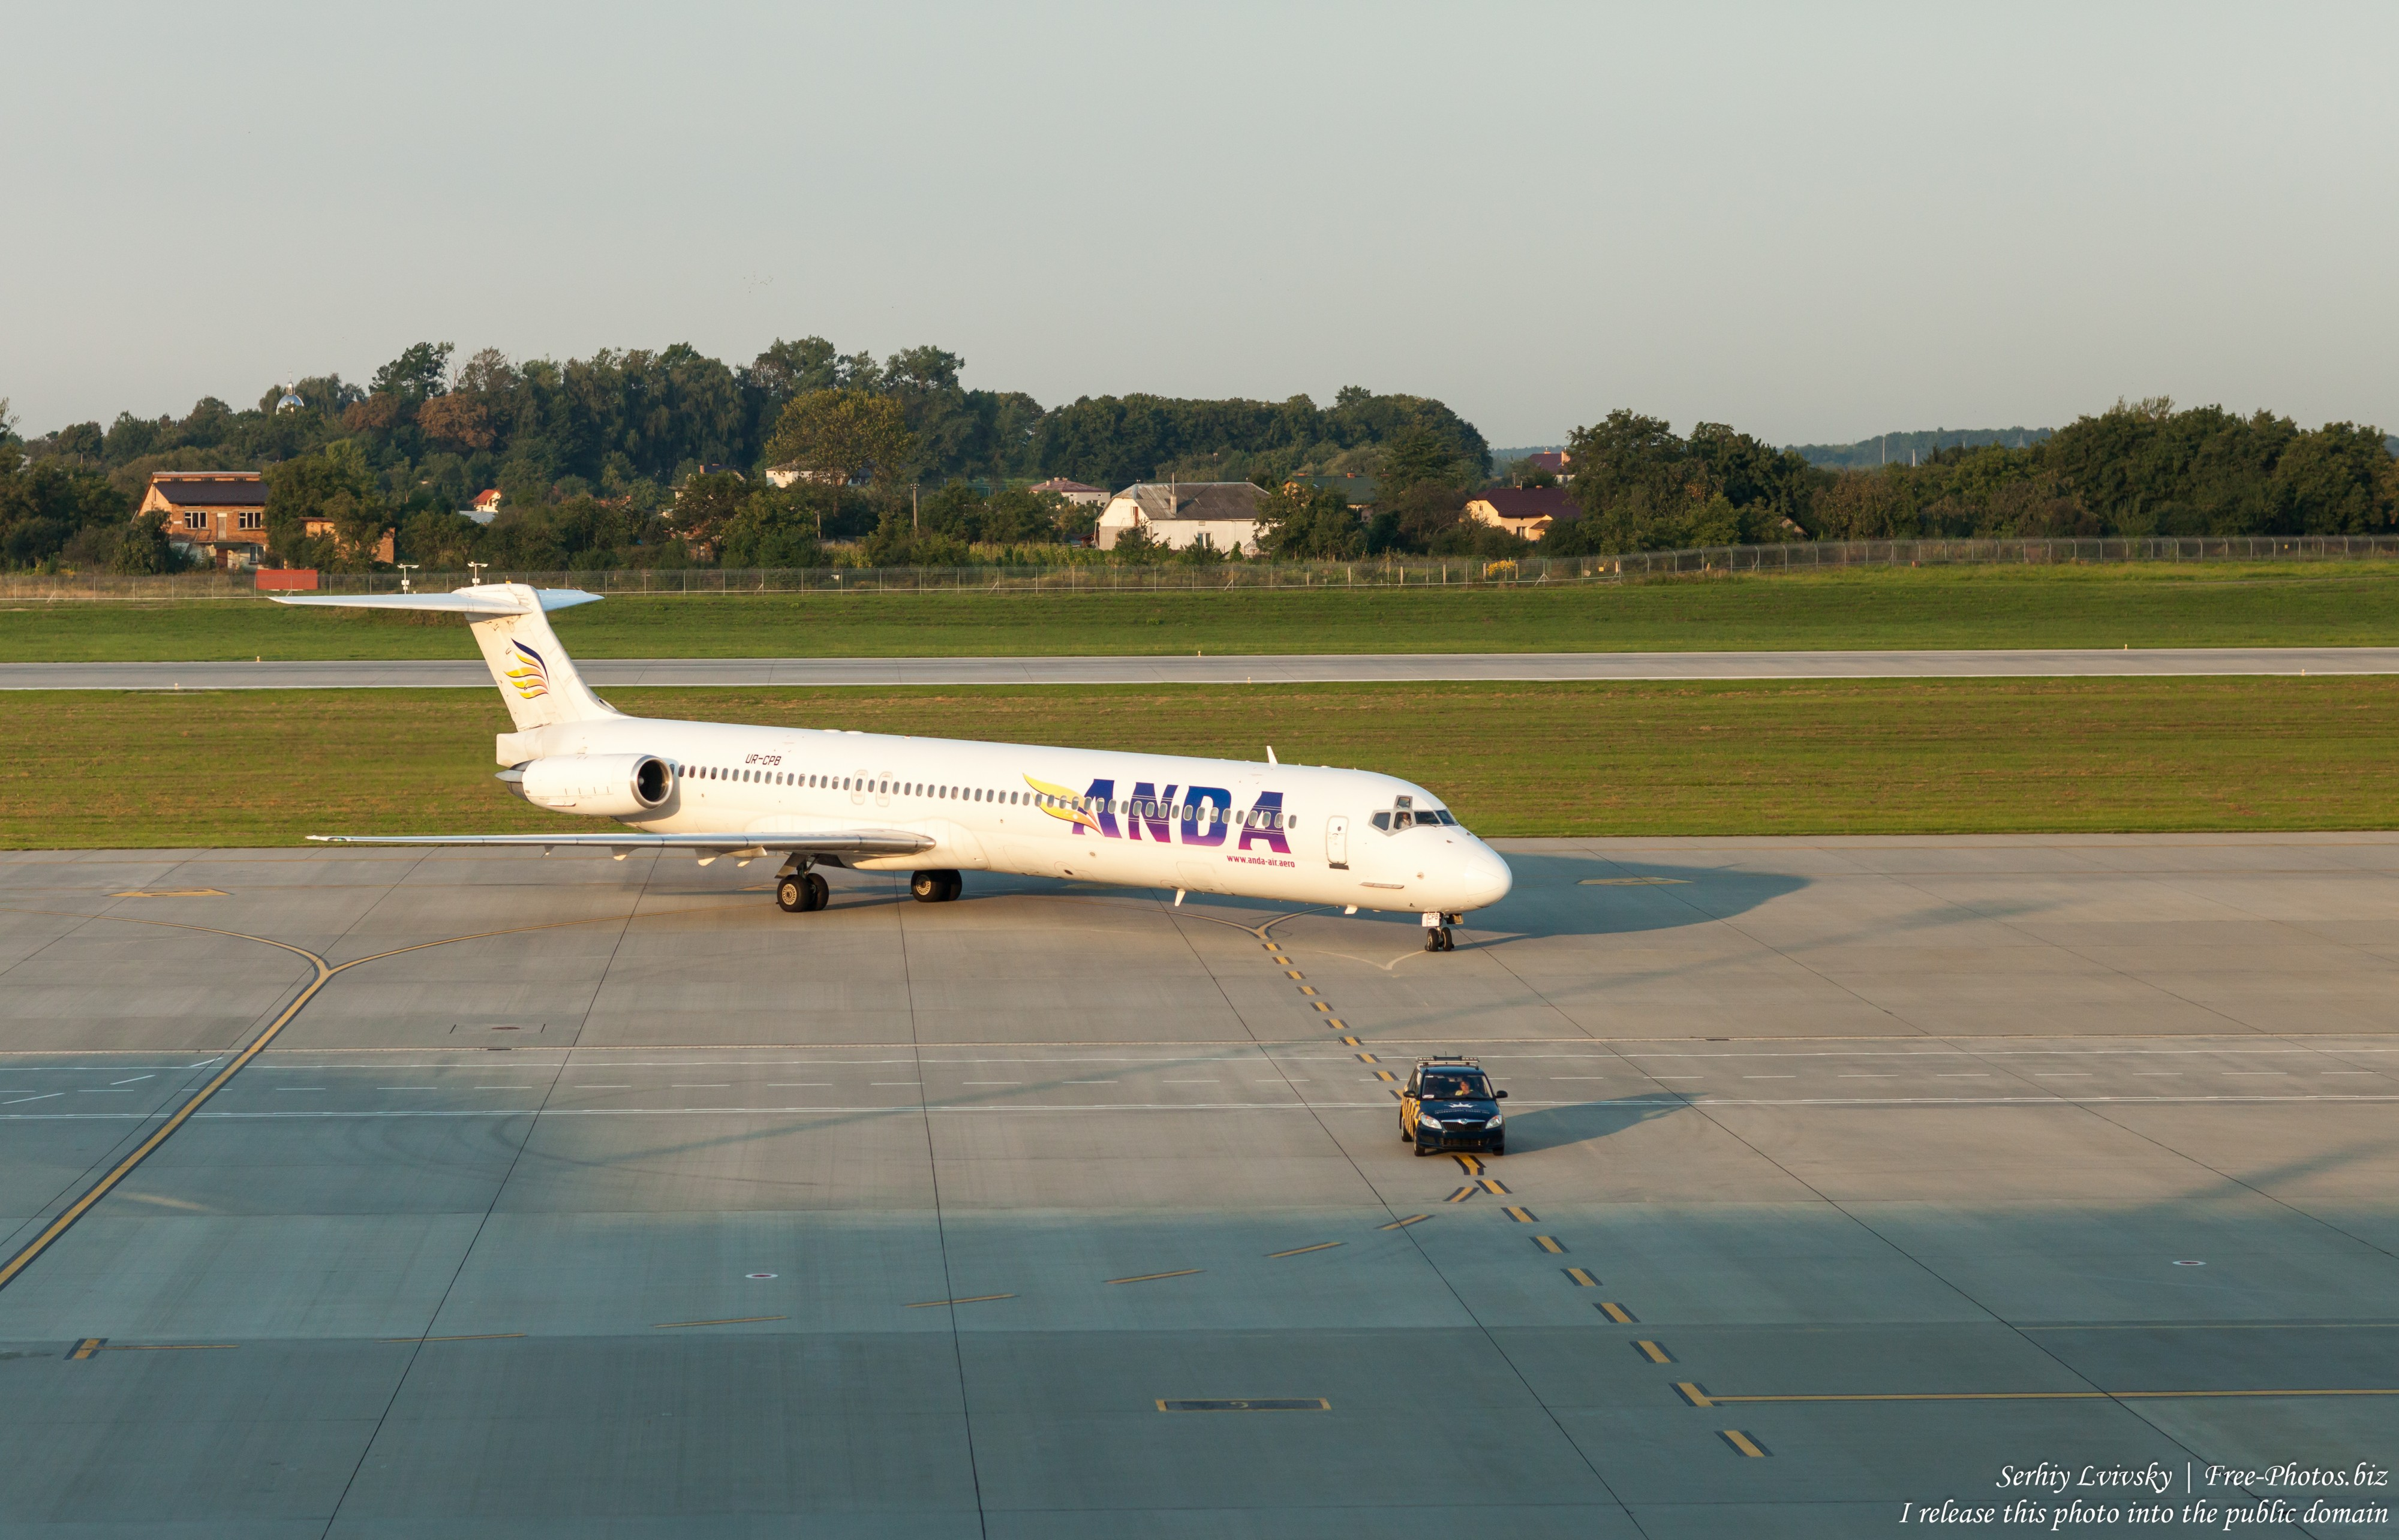 an Anda Air aircraft in Lviv airport, Ukraine, photographed by Serhiy Lvivsky in August 2018, picture 1